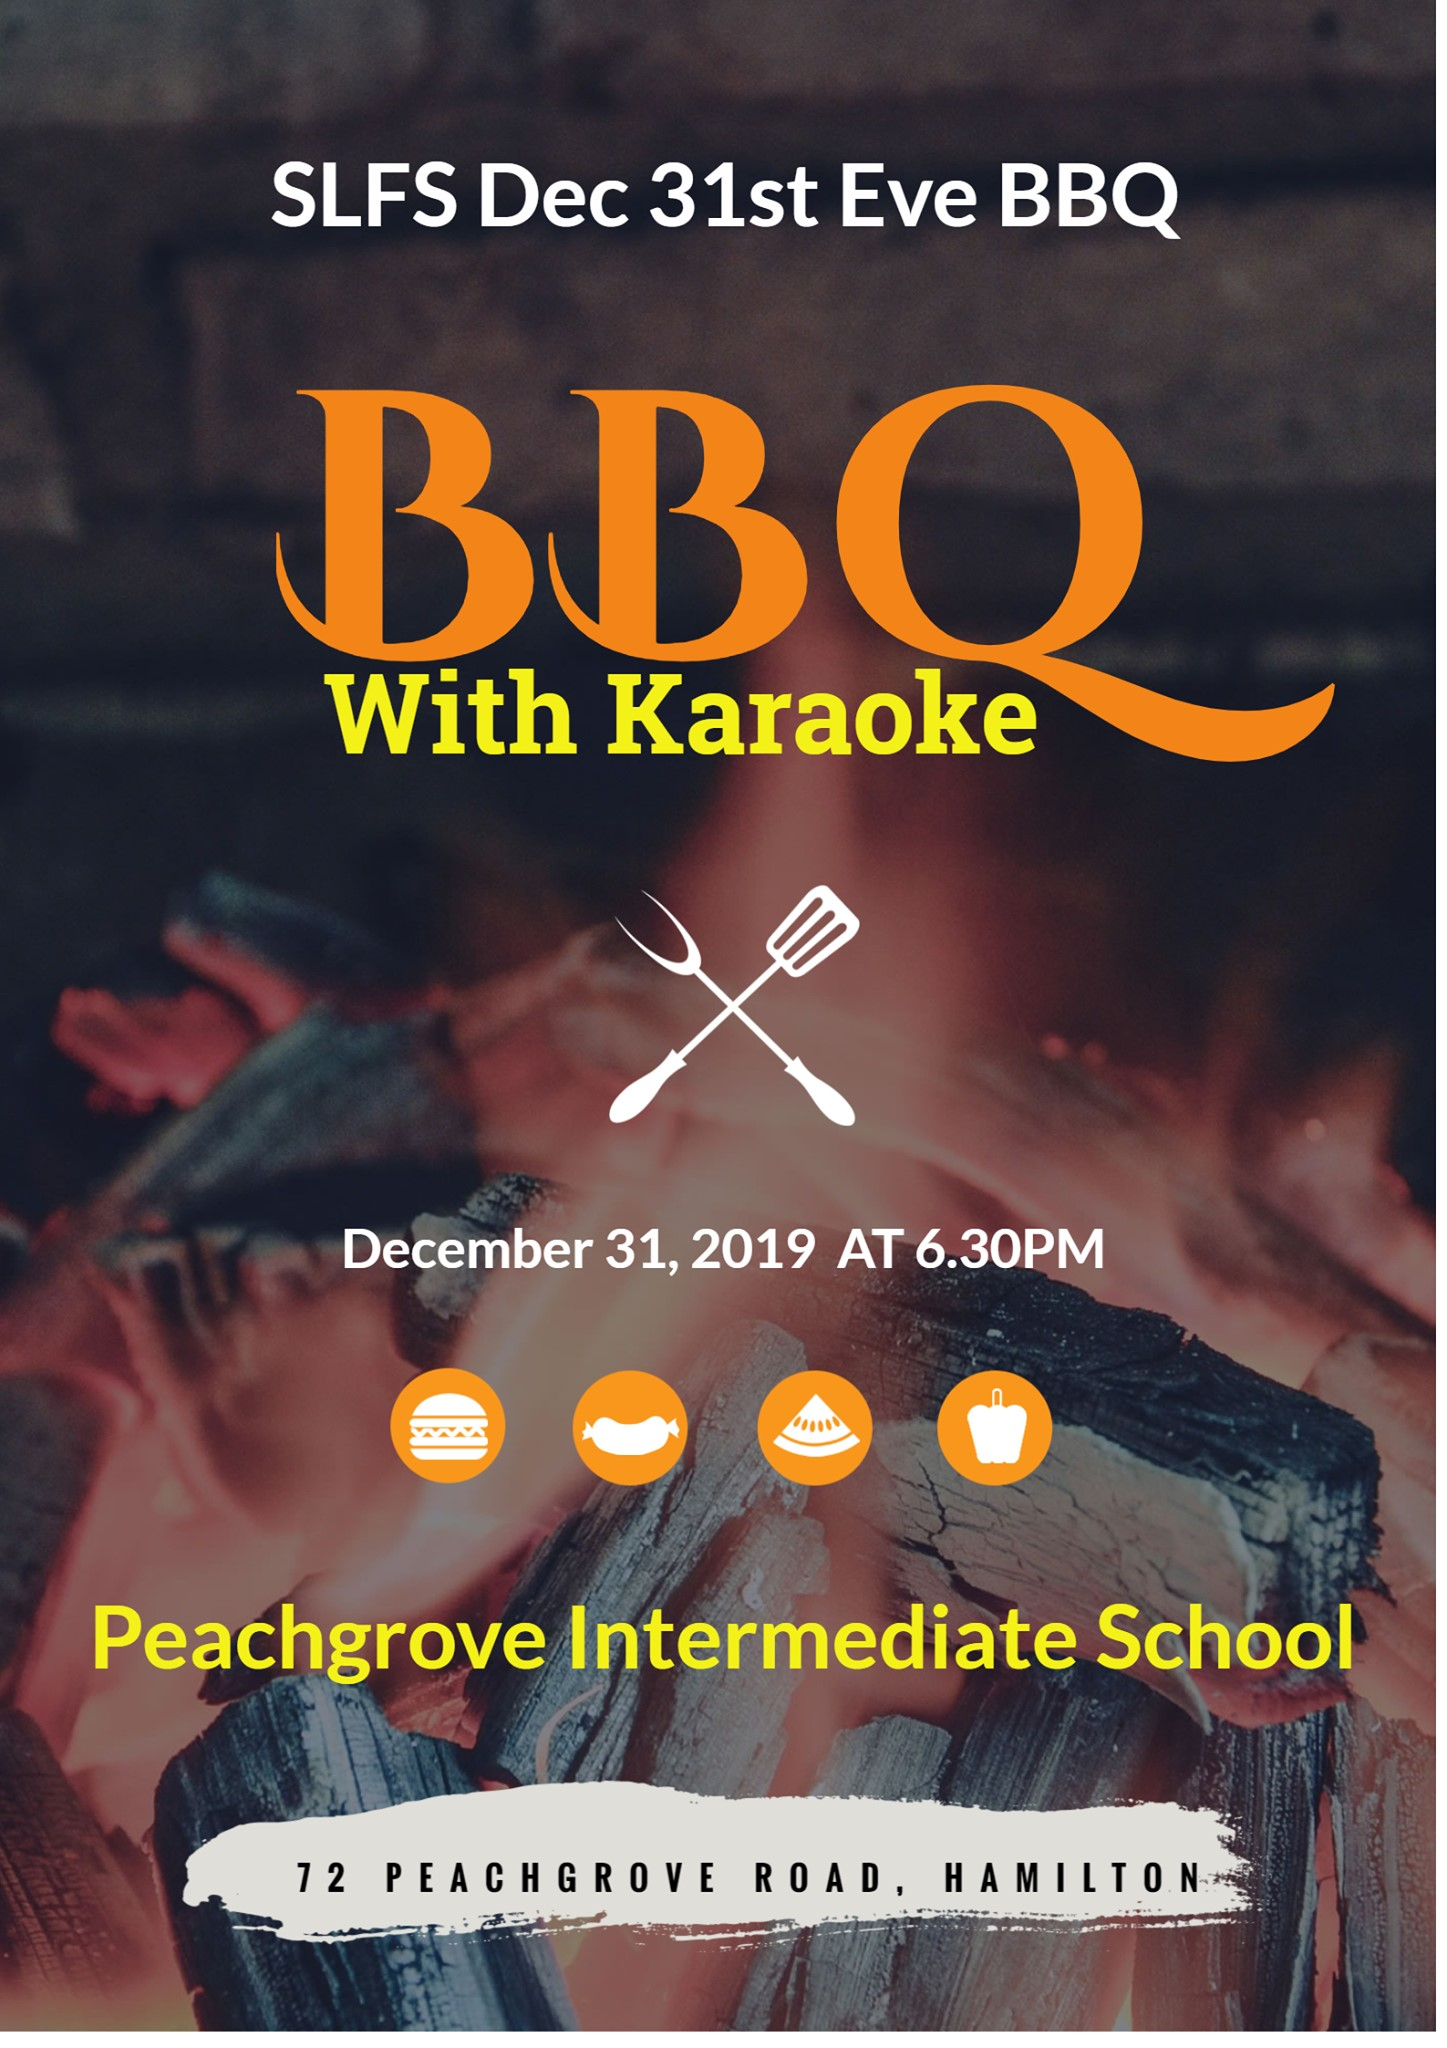 31st Eve With BBQ & Karaoke